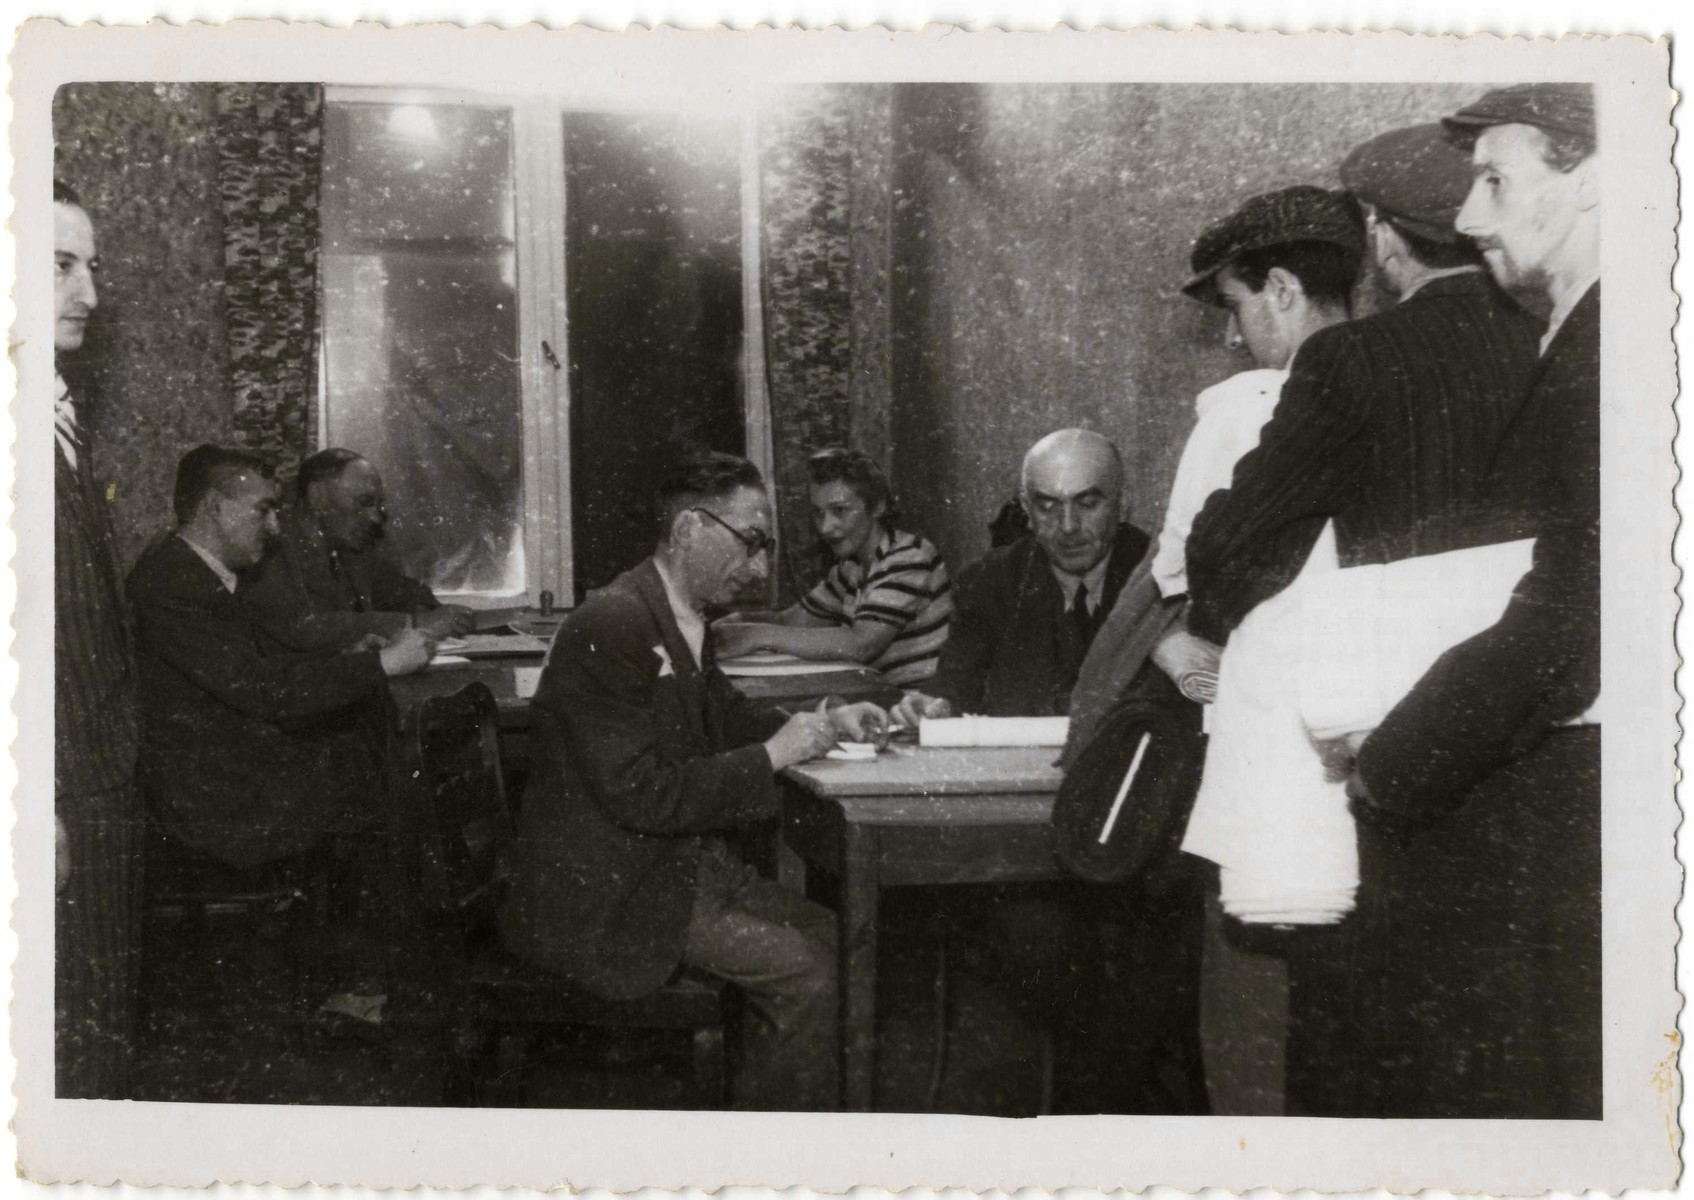 Employees of  the Zentral Einkaufstelle, the central purchasing department of the ghetto, process the distribution of bolts of cloth.  Seated in the back left is Gustaw Gerson, the director of the Einkaufstelle.  Seated directly behind him is Dawid Warszawski, head of the textile workshops.